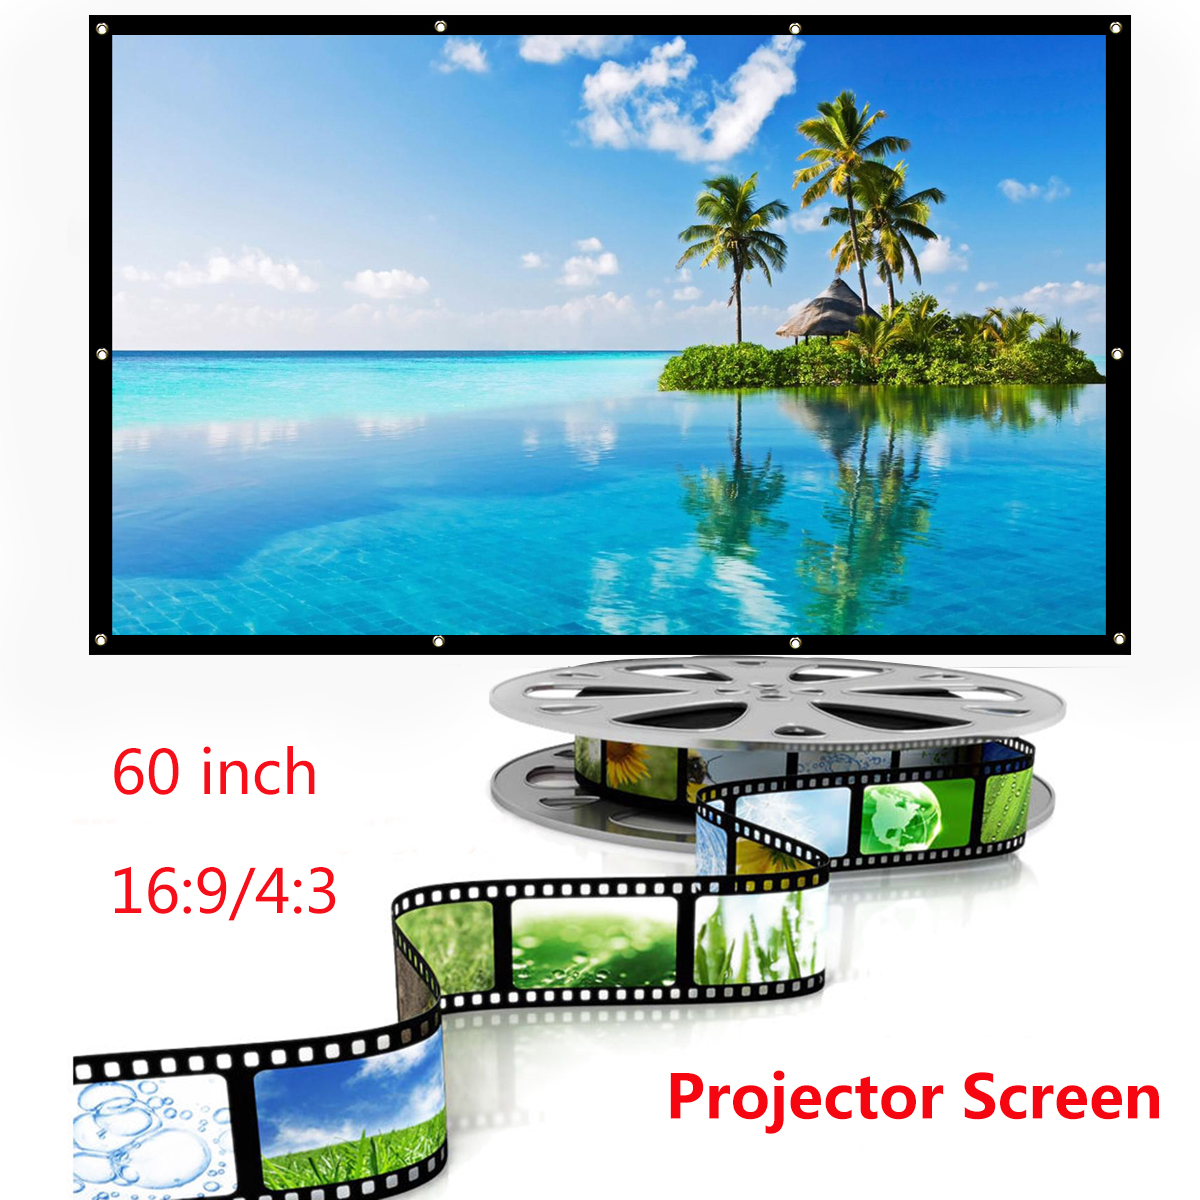 60inch 4:3 16:9 Outdoor Portable Collapsible Projector Screen Manual Pull Down Projector For Home Film Theater Movie Cinema Outdoor Office